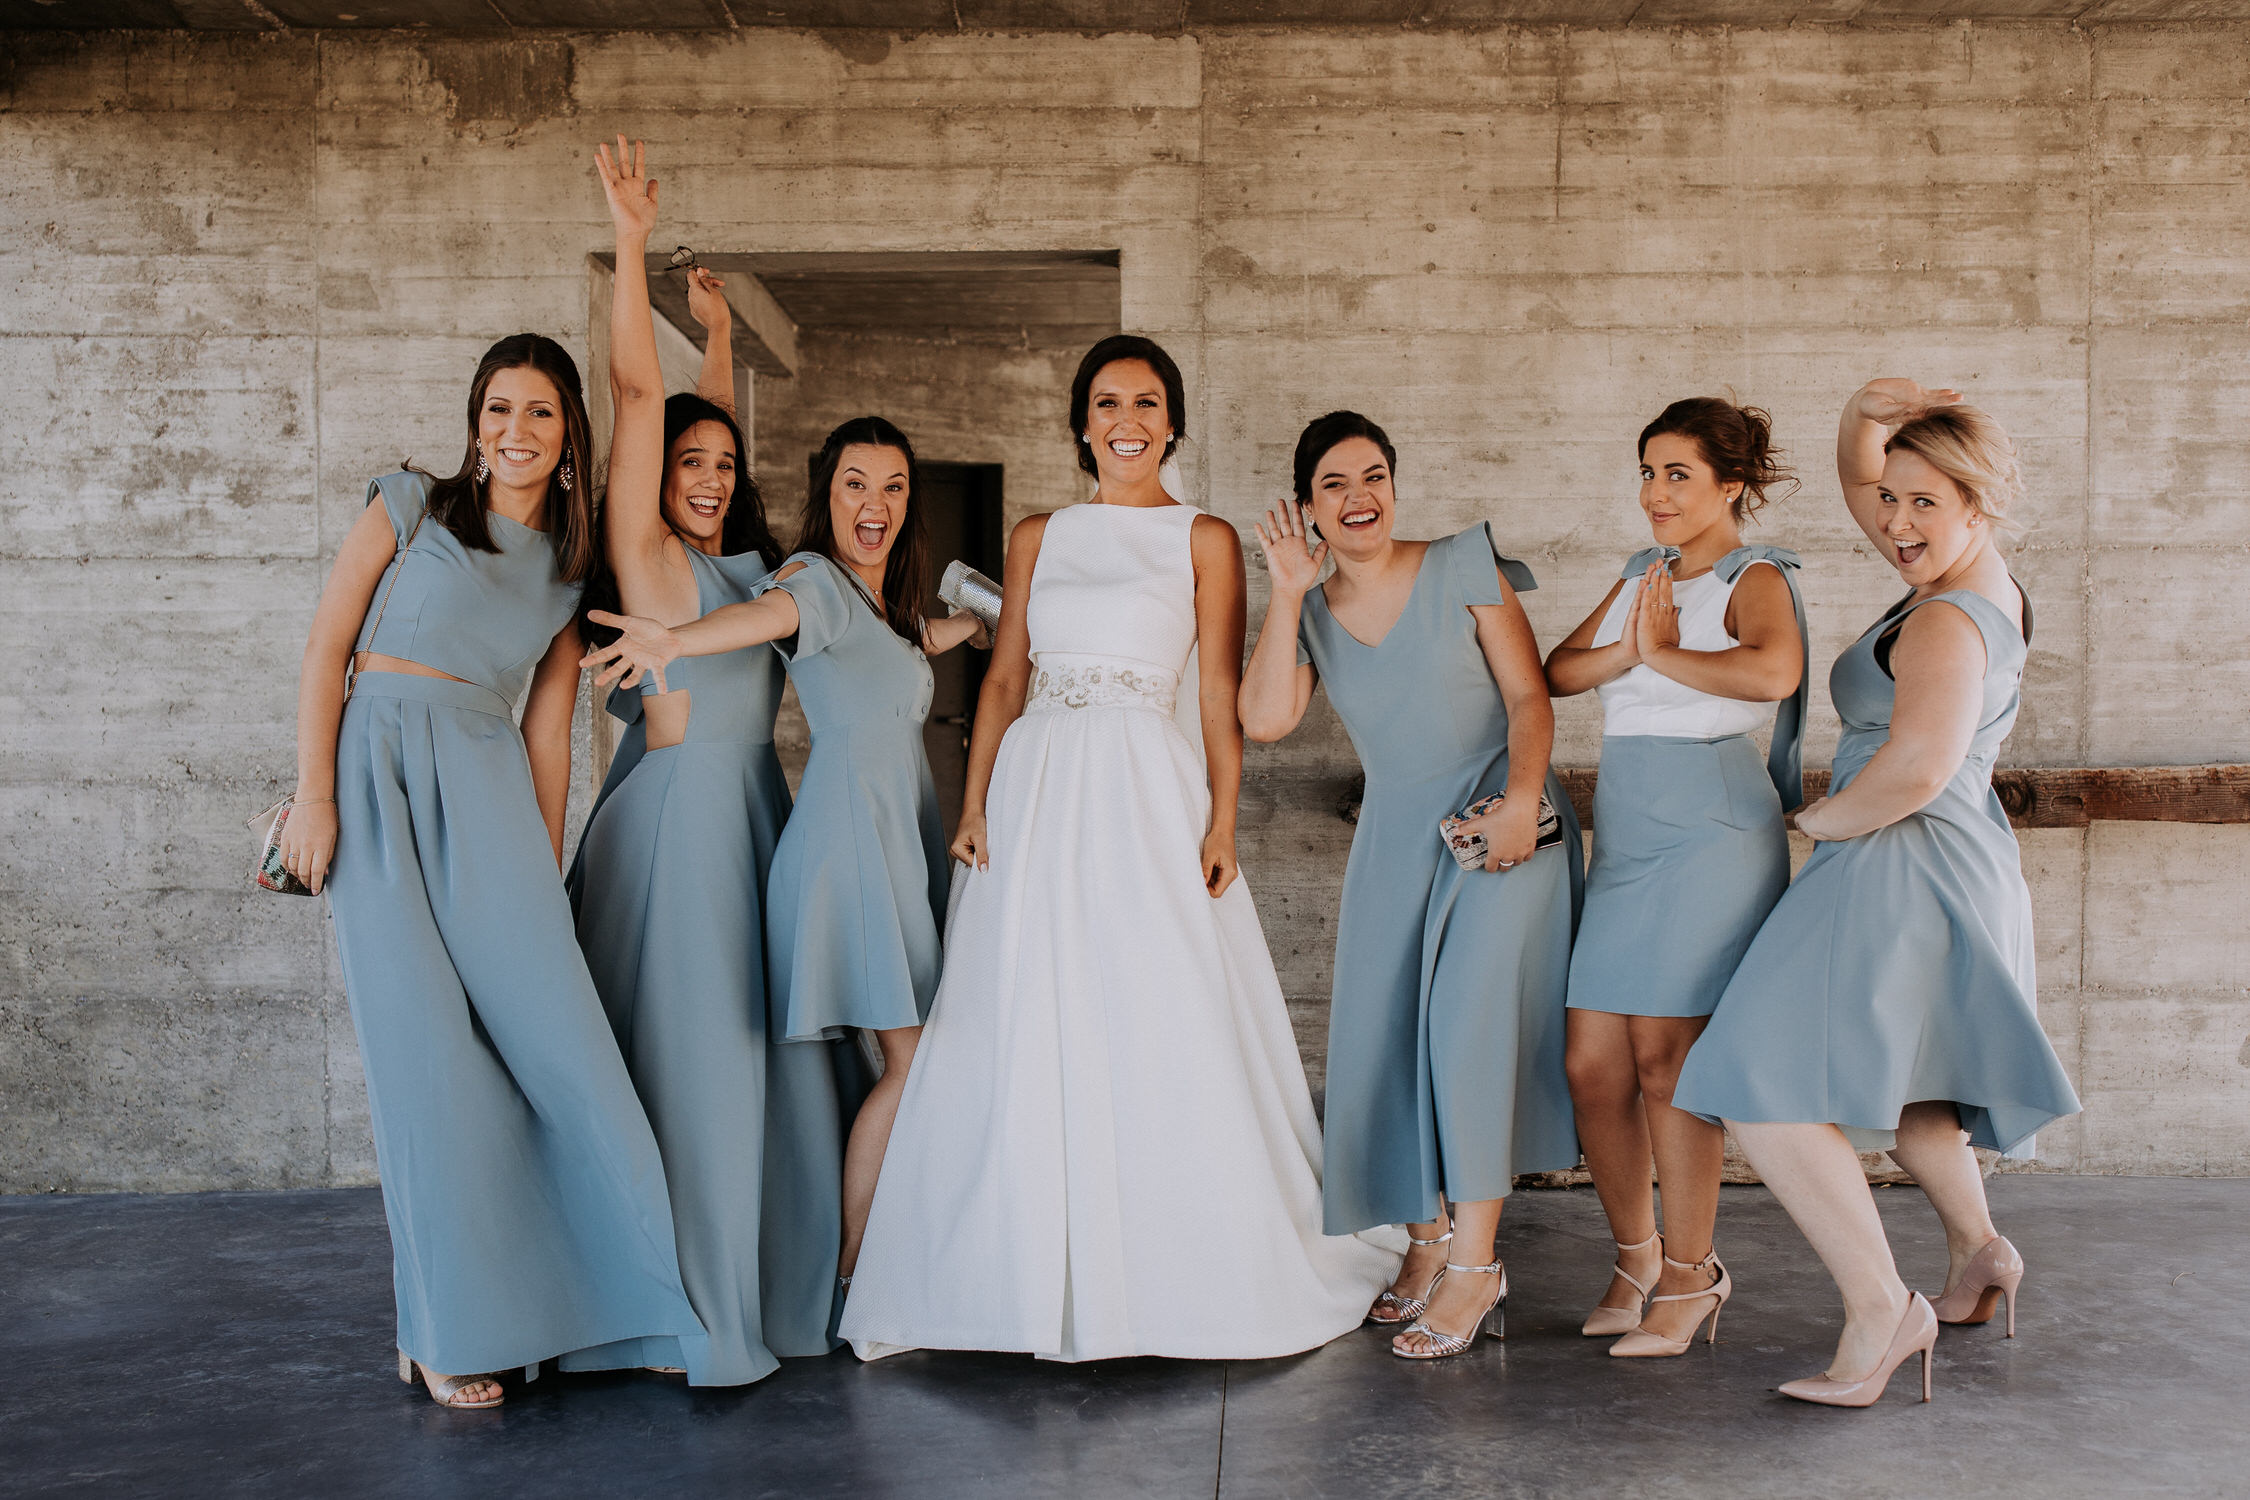 034 Filipe Santiago Fotografia Casamento wedding photographer near venue Lisbon Malveira Ericeira best Sintra Portugal destination bridemaids